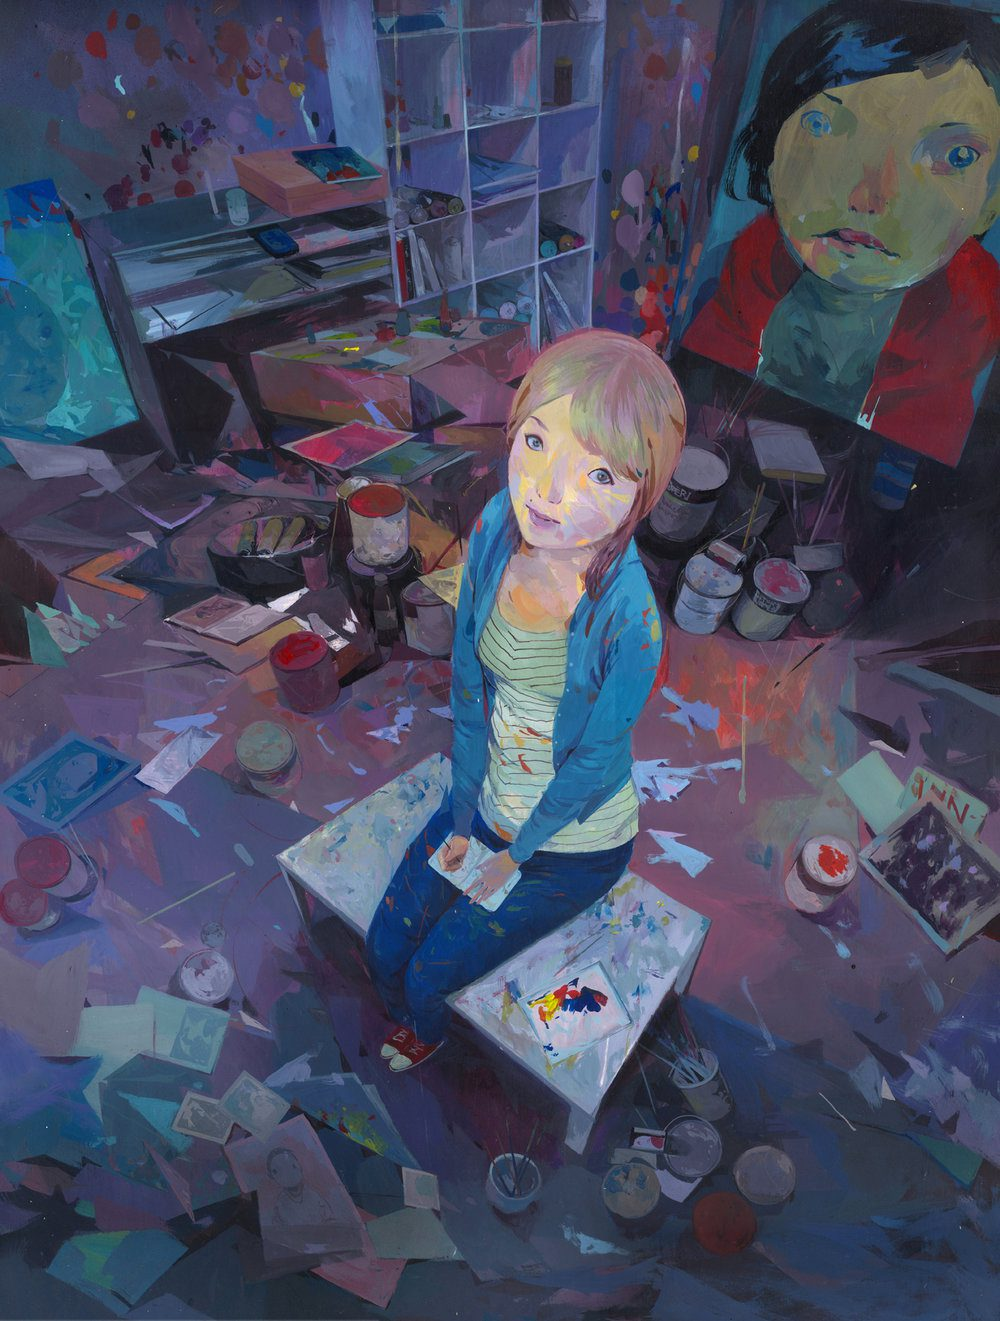 Colorful Illustrative Paintings By Andrew Hem 7